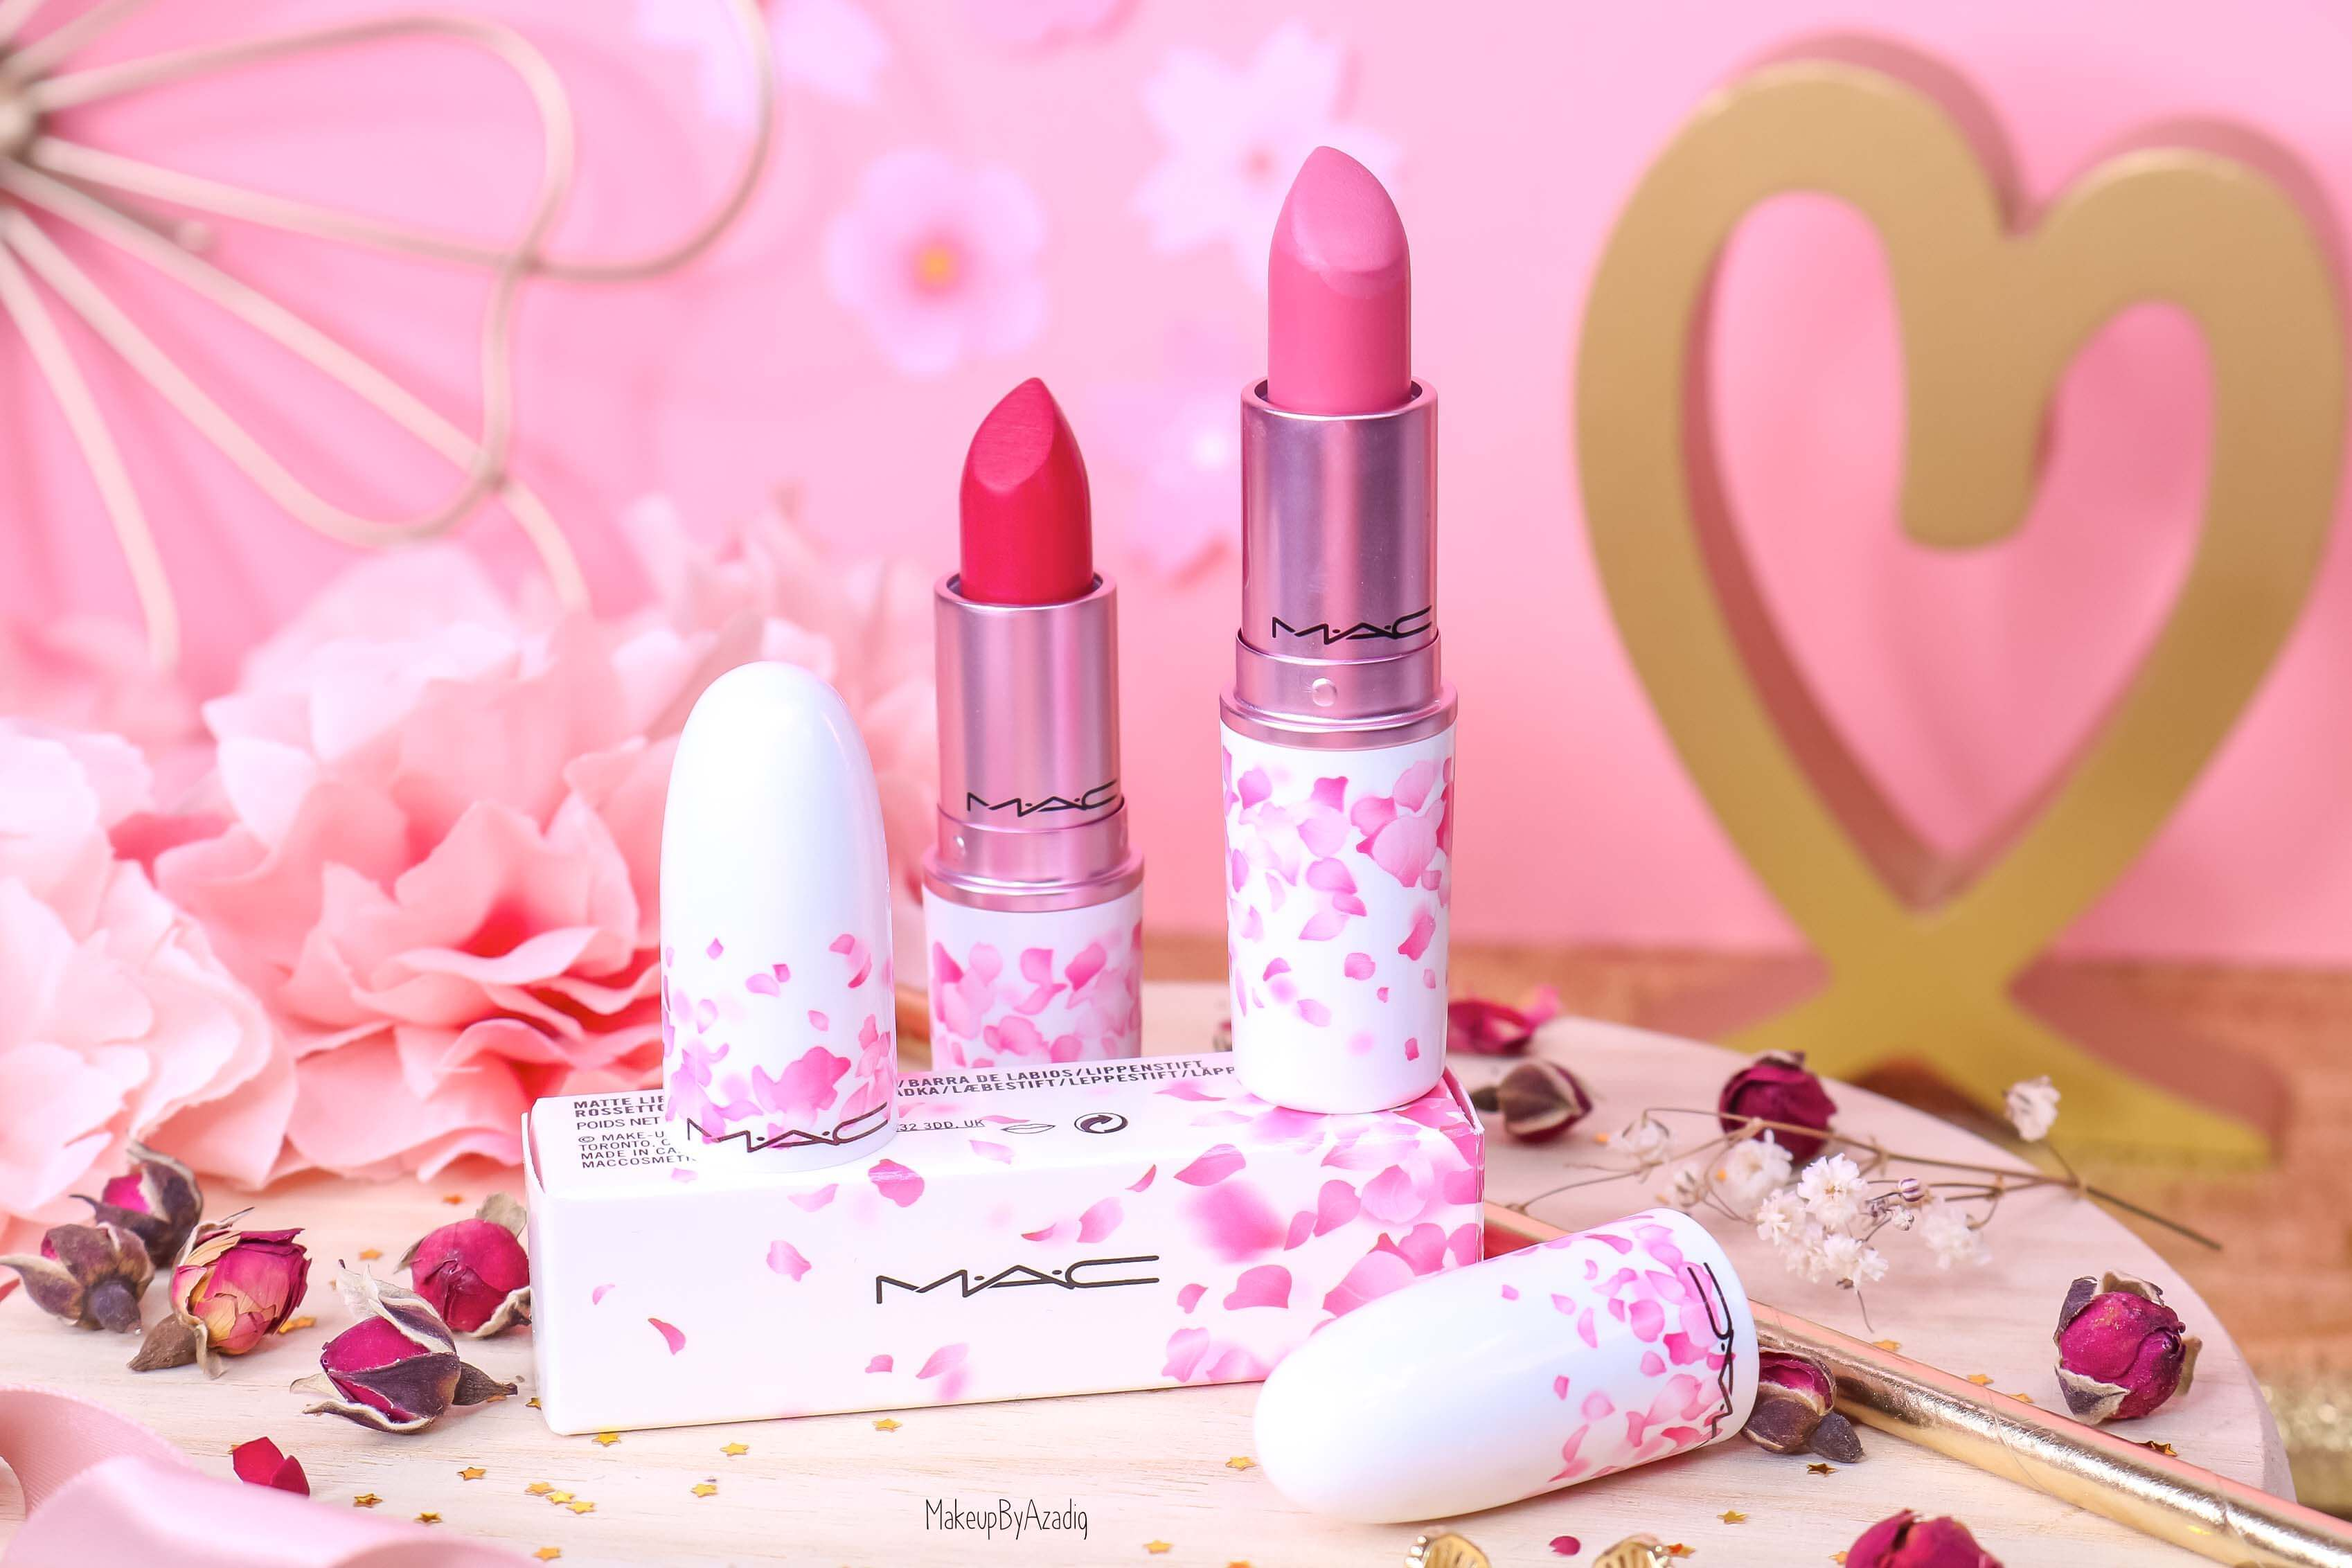 revue-rouge-a-levres-mac-cosmetics-collection-boom-boom-bloom-printemps-makeupbyazadig-avis-swatch-prix-france-japon